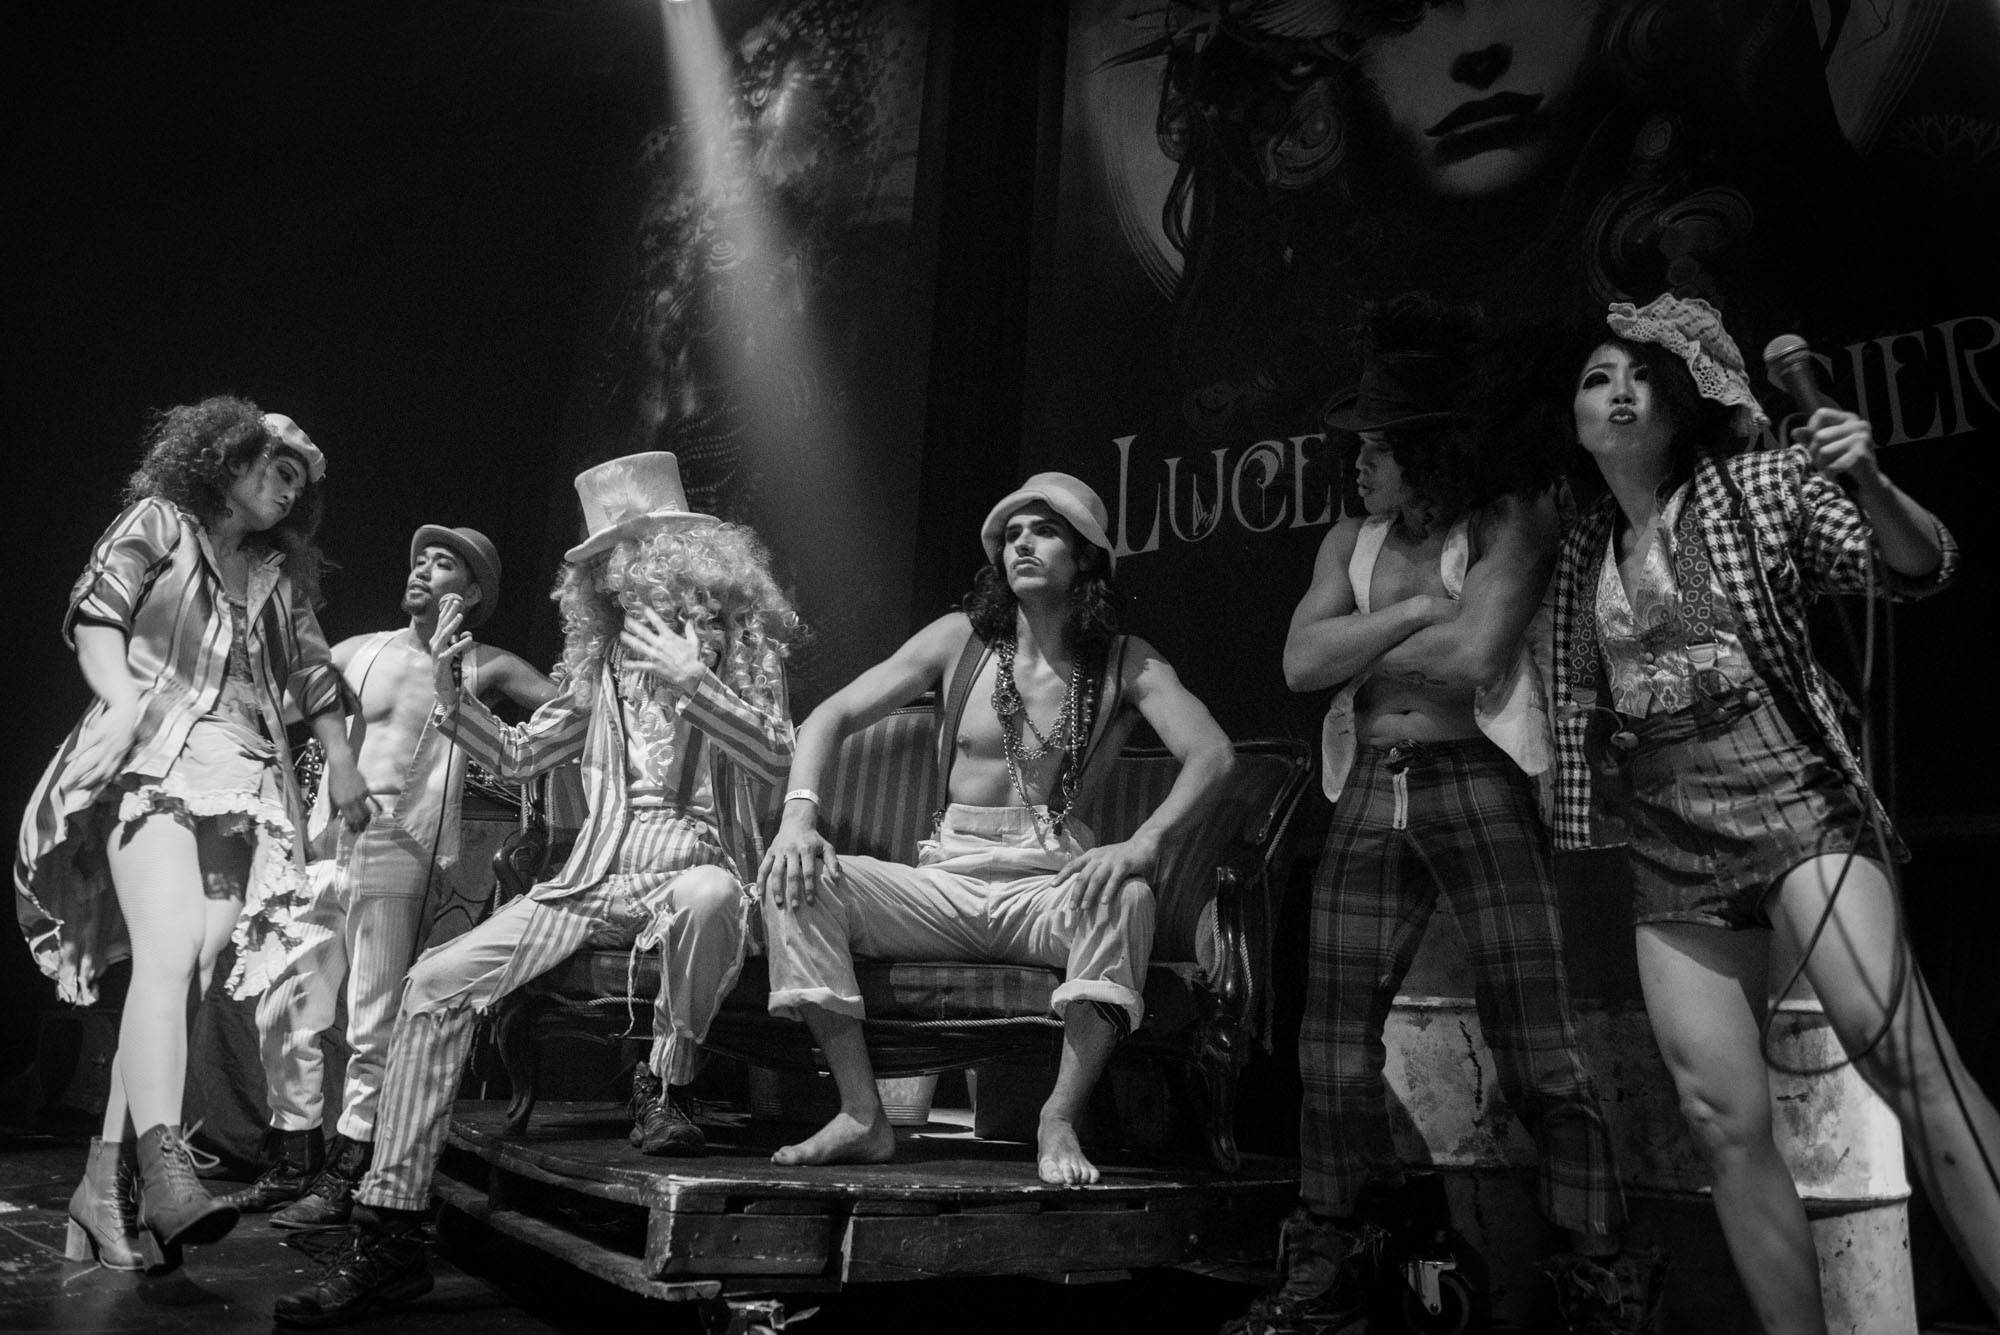 Lucent Dossier Experience at the Imperial Theatre, Vancouver, Aug 10 2017. Jason Martin photo.